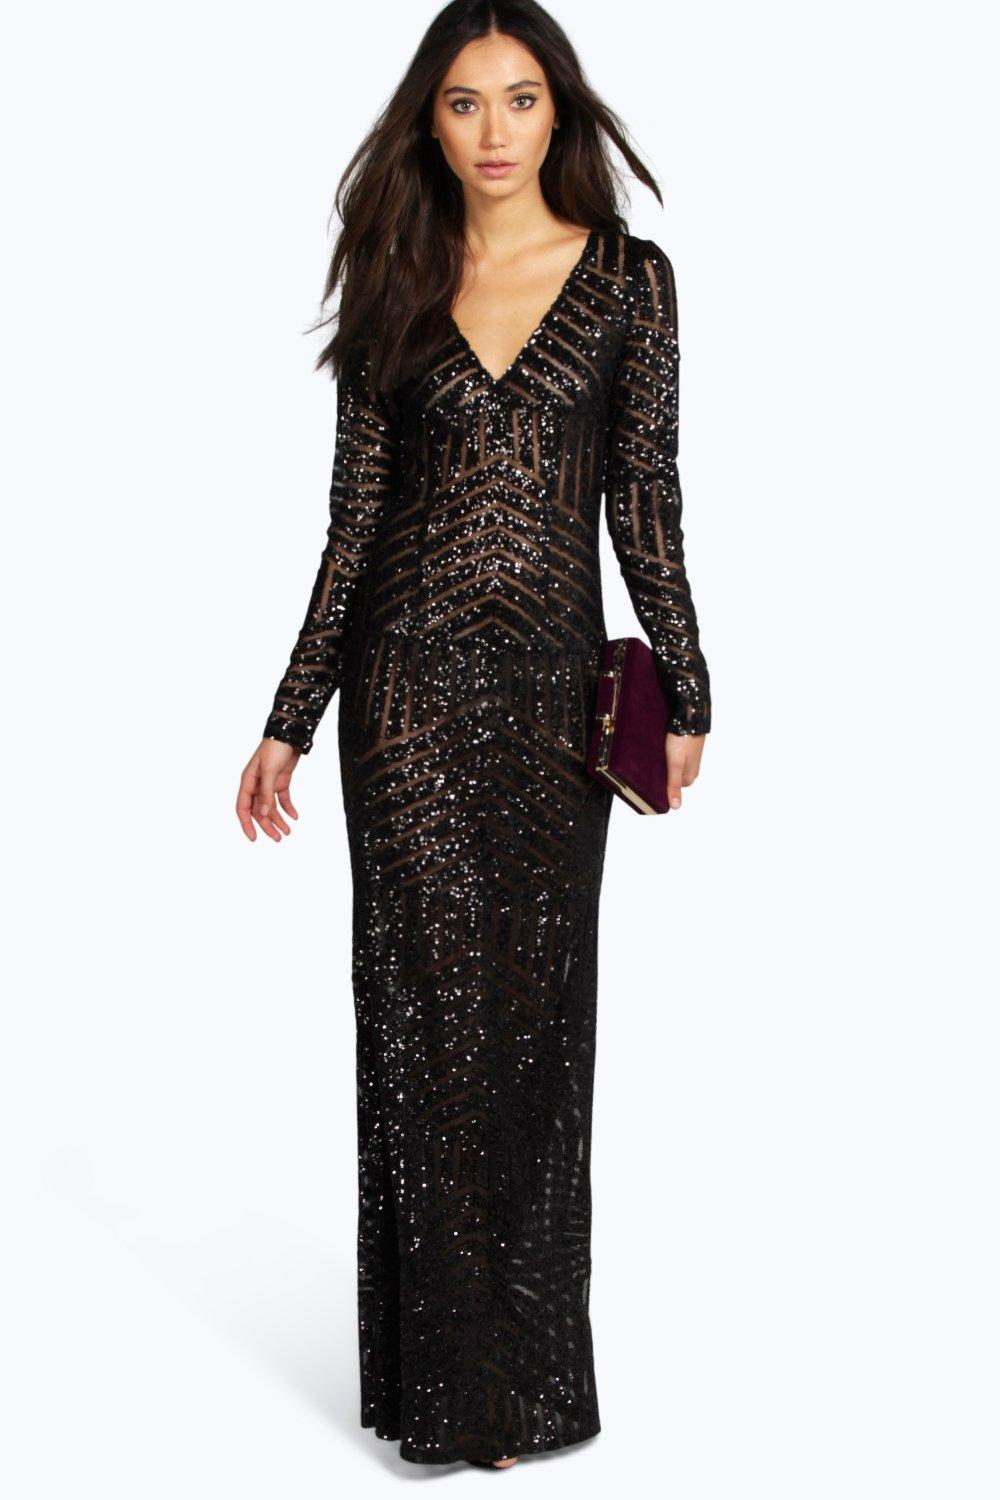 sequin maxi dress boutique mia sequin u0026 mesh maxi dress. hover to zoom tovrmqb